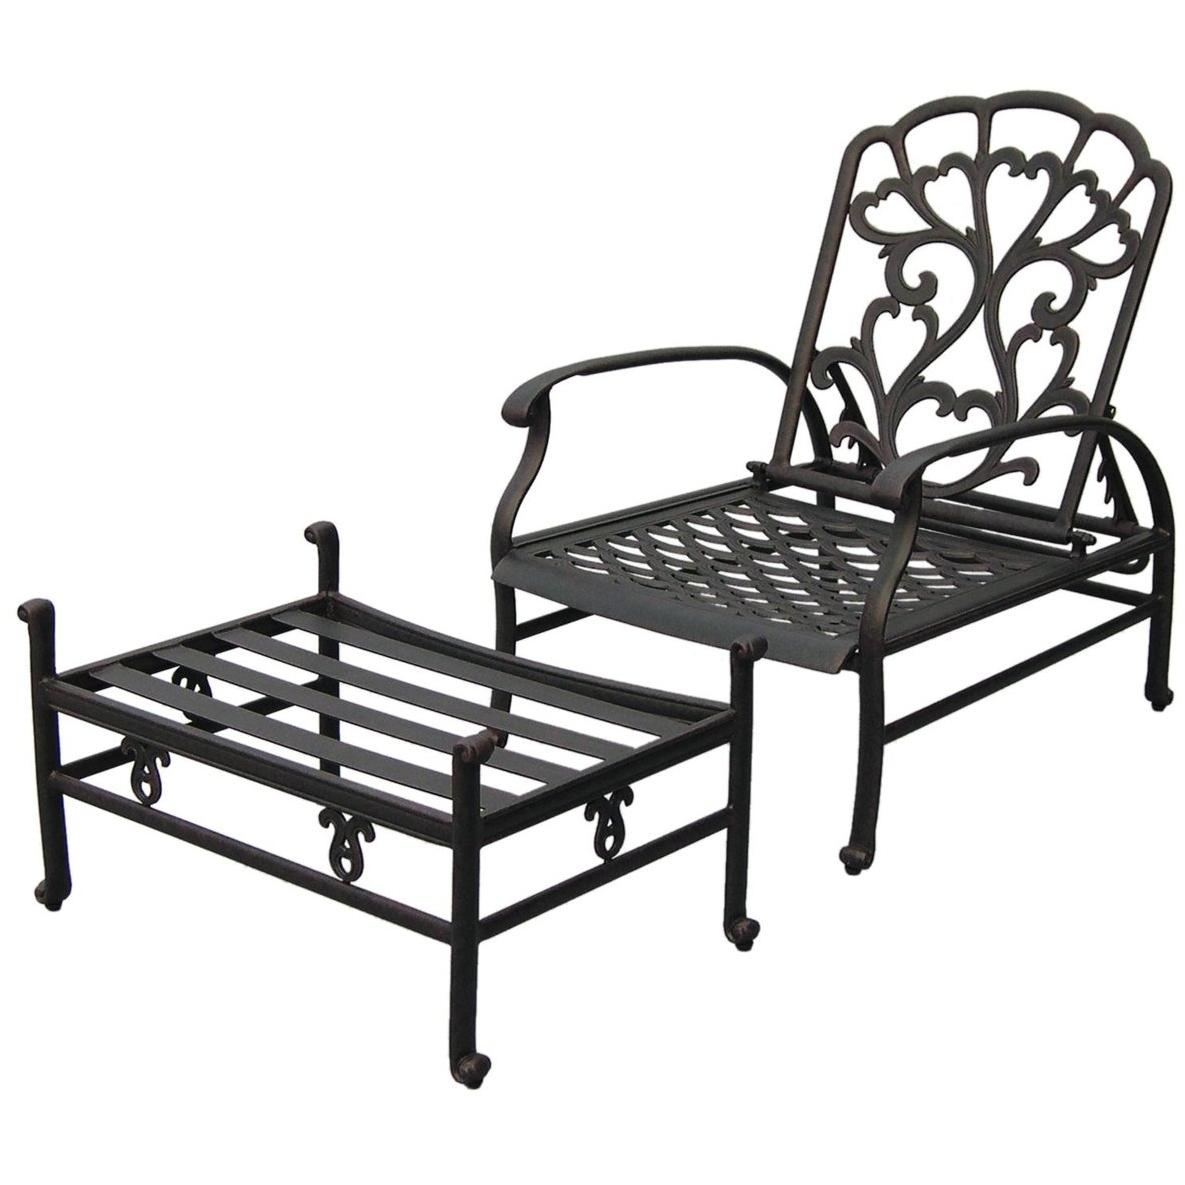 Darlee Catalina Adjustable Cast Aluminum Outdoor Patio Club Chair And Ottoman With Cushions - Antique Bronze